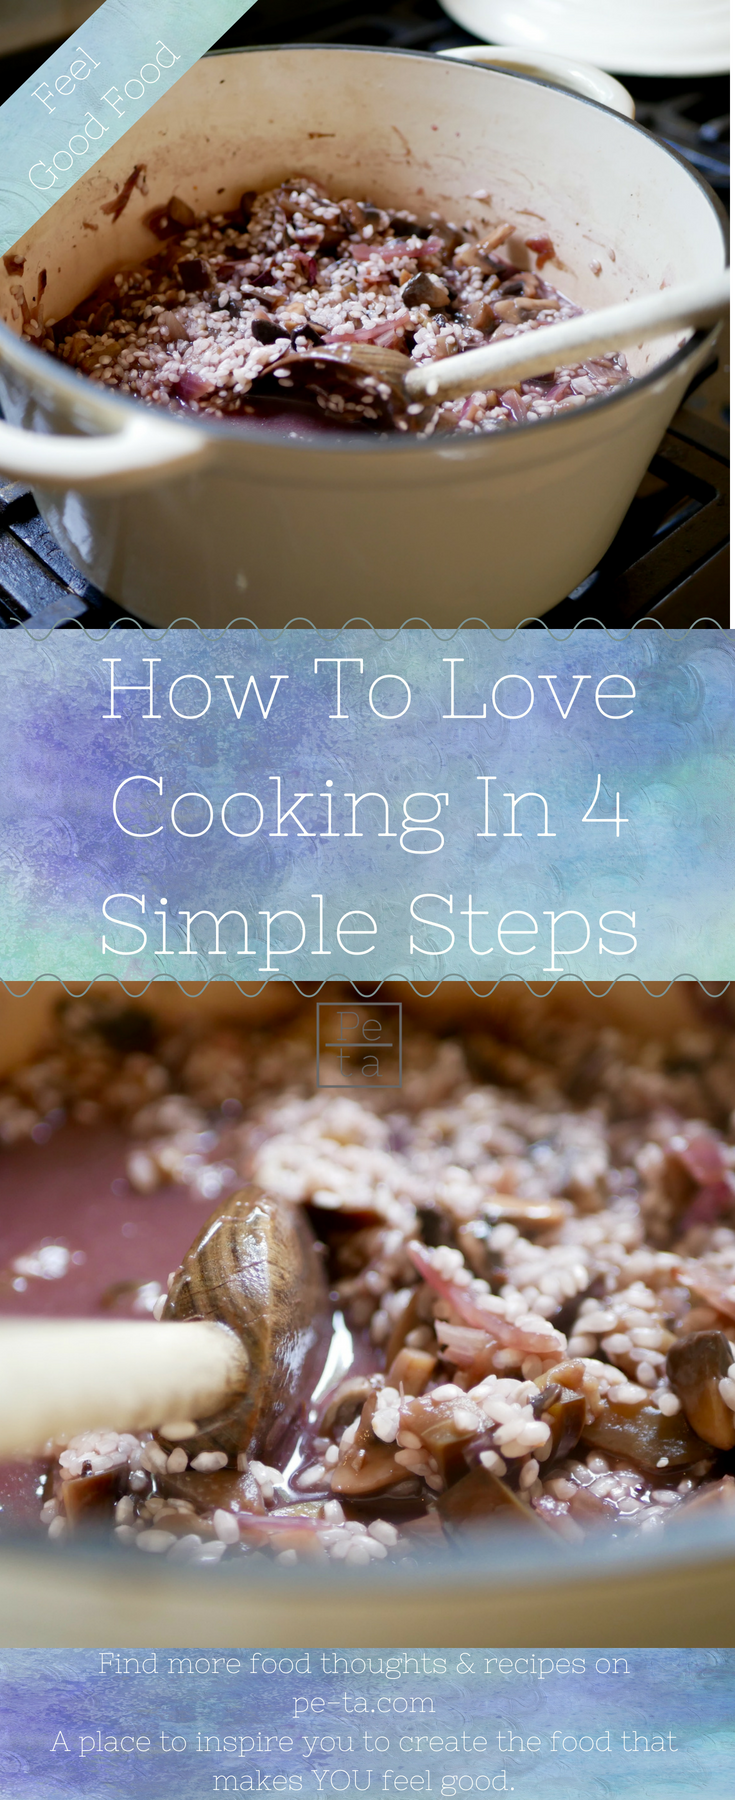 How To Love Cooking in 4 Simple Steps